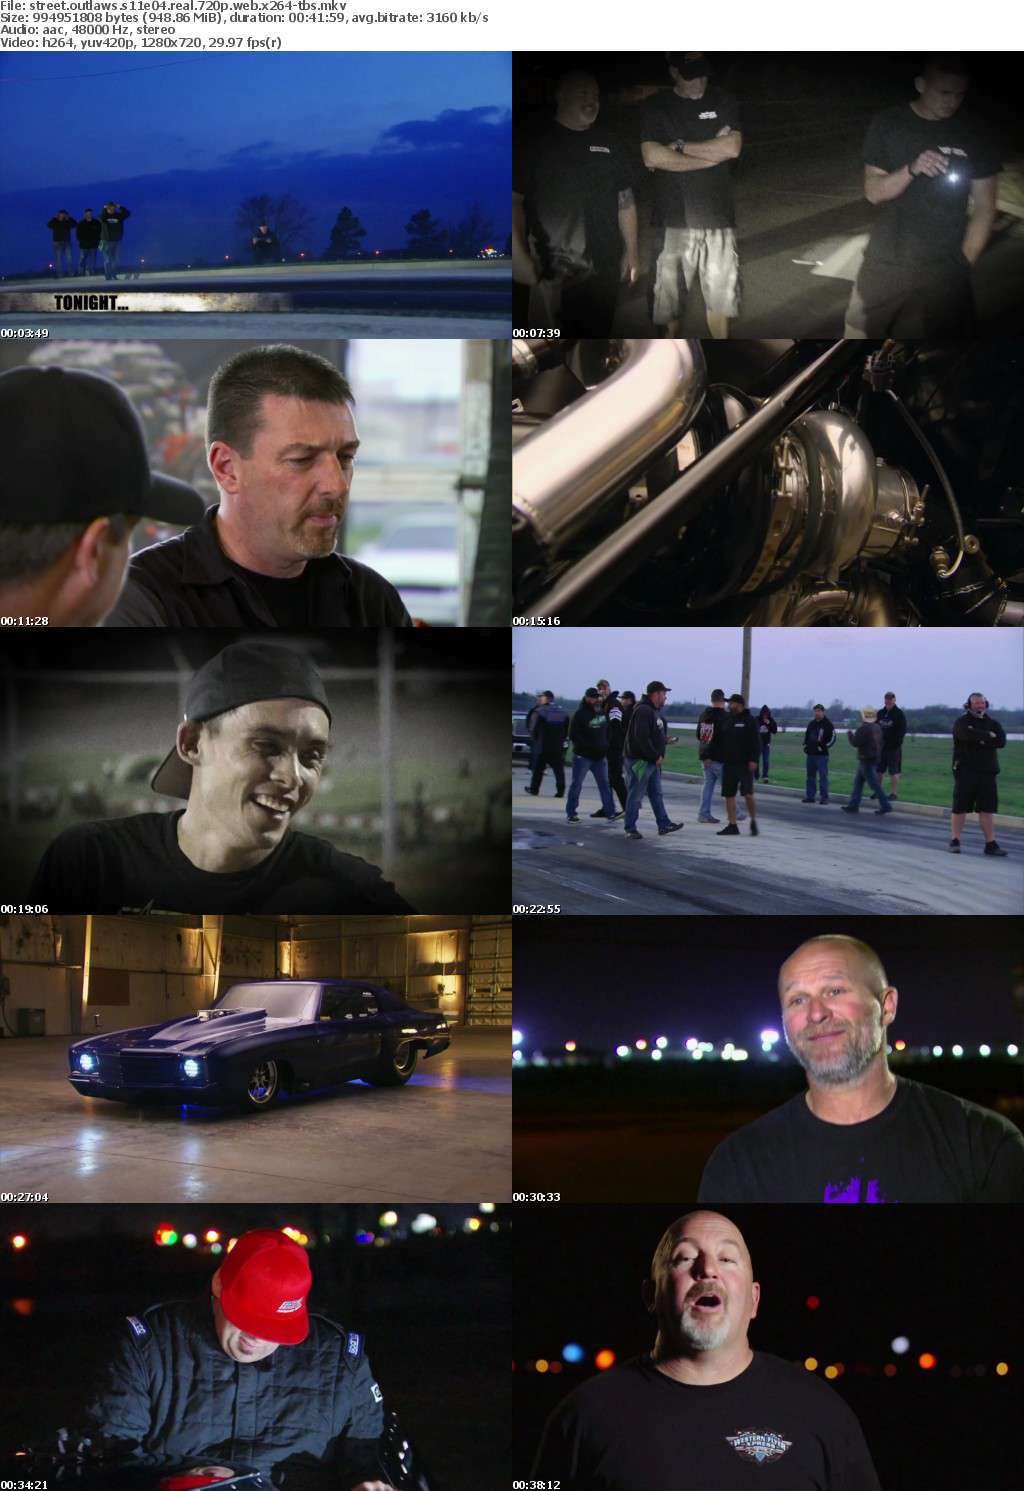 Street Outlaws S11E04 REAL 720p WEB x264-TBS